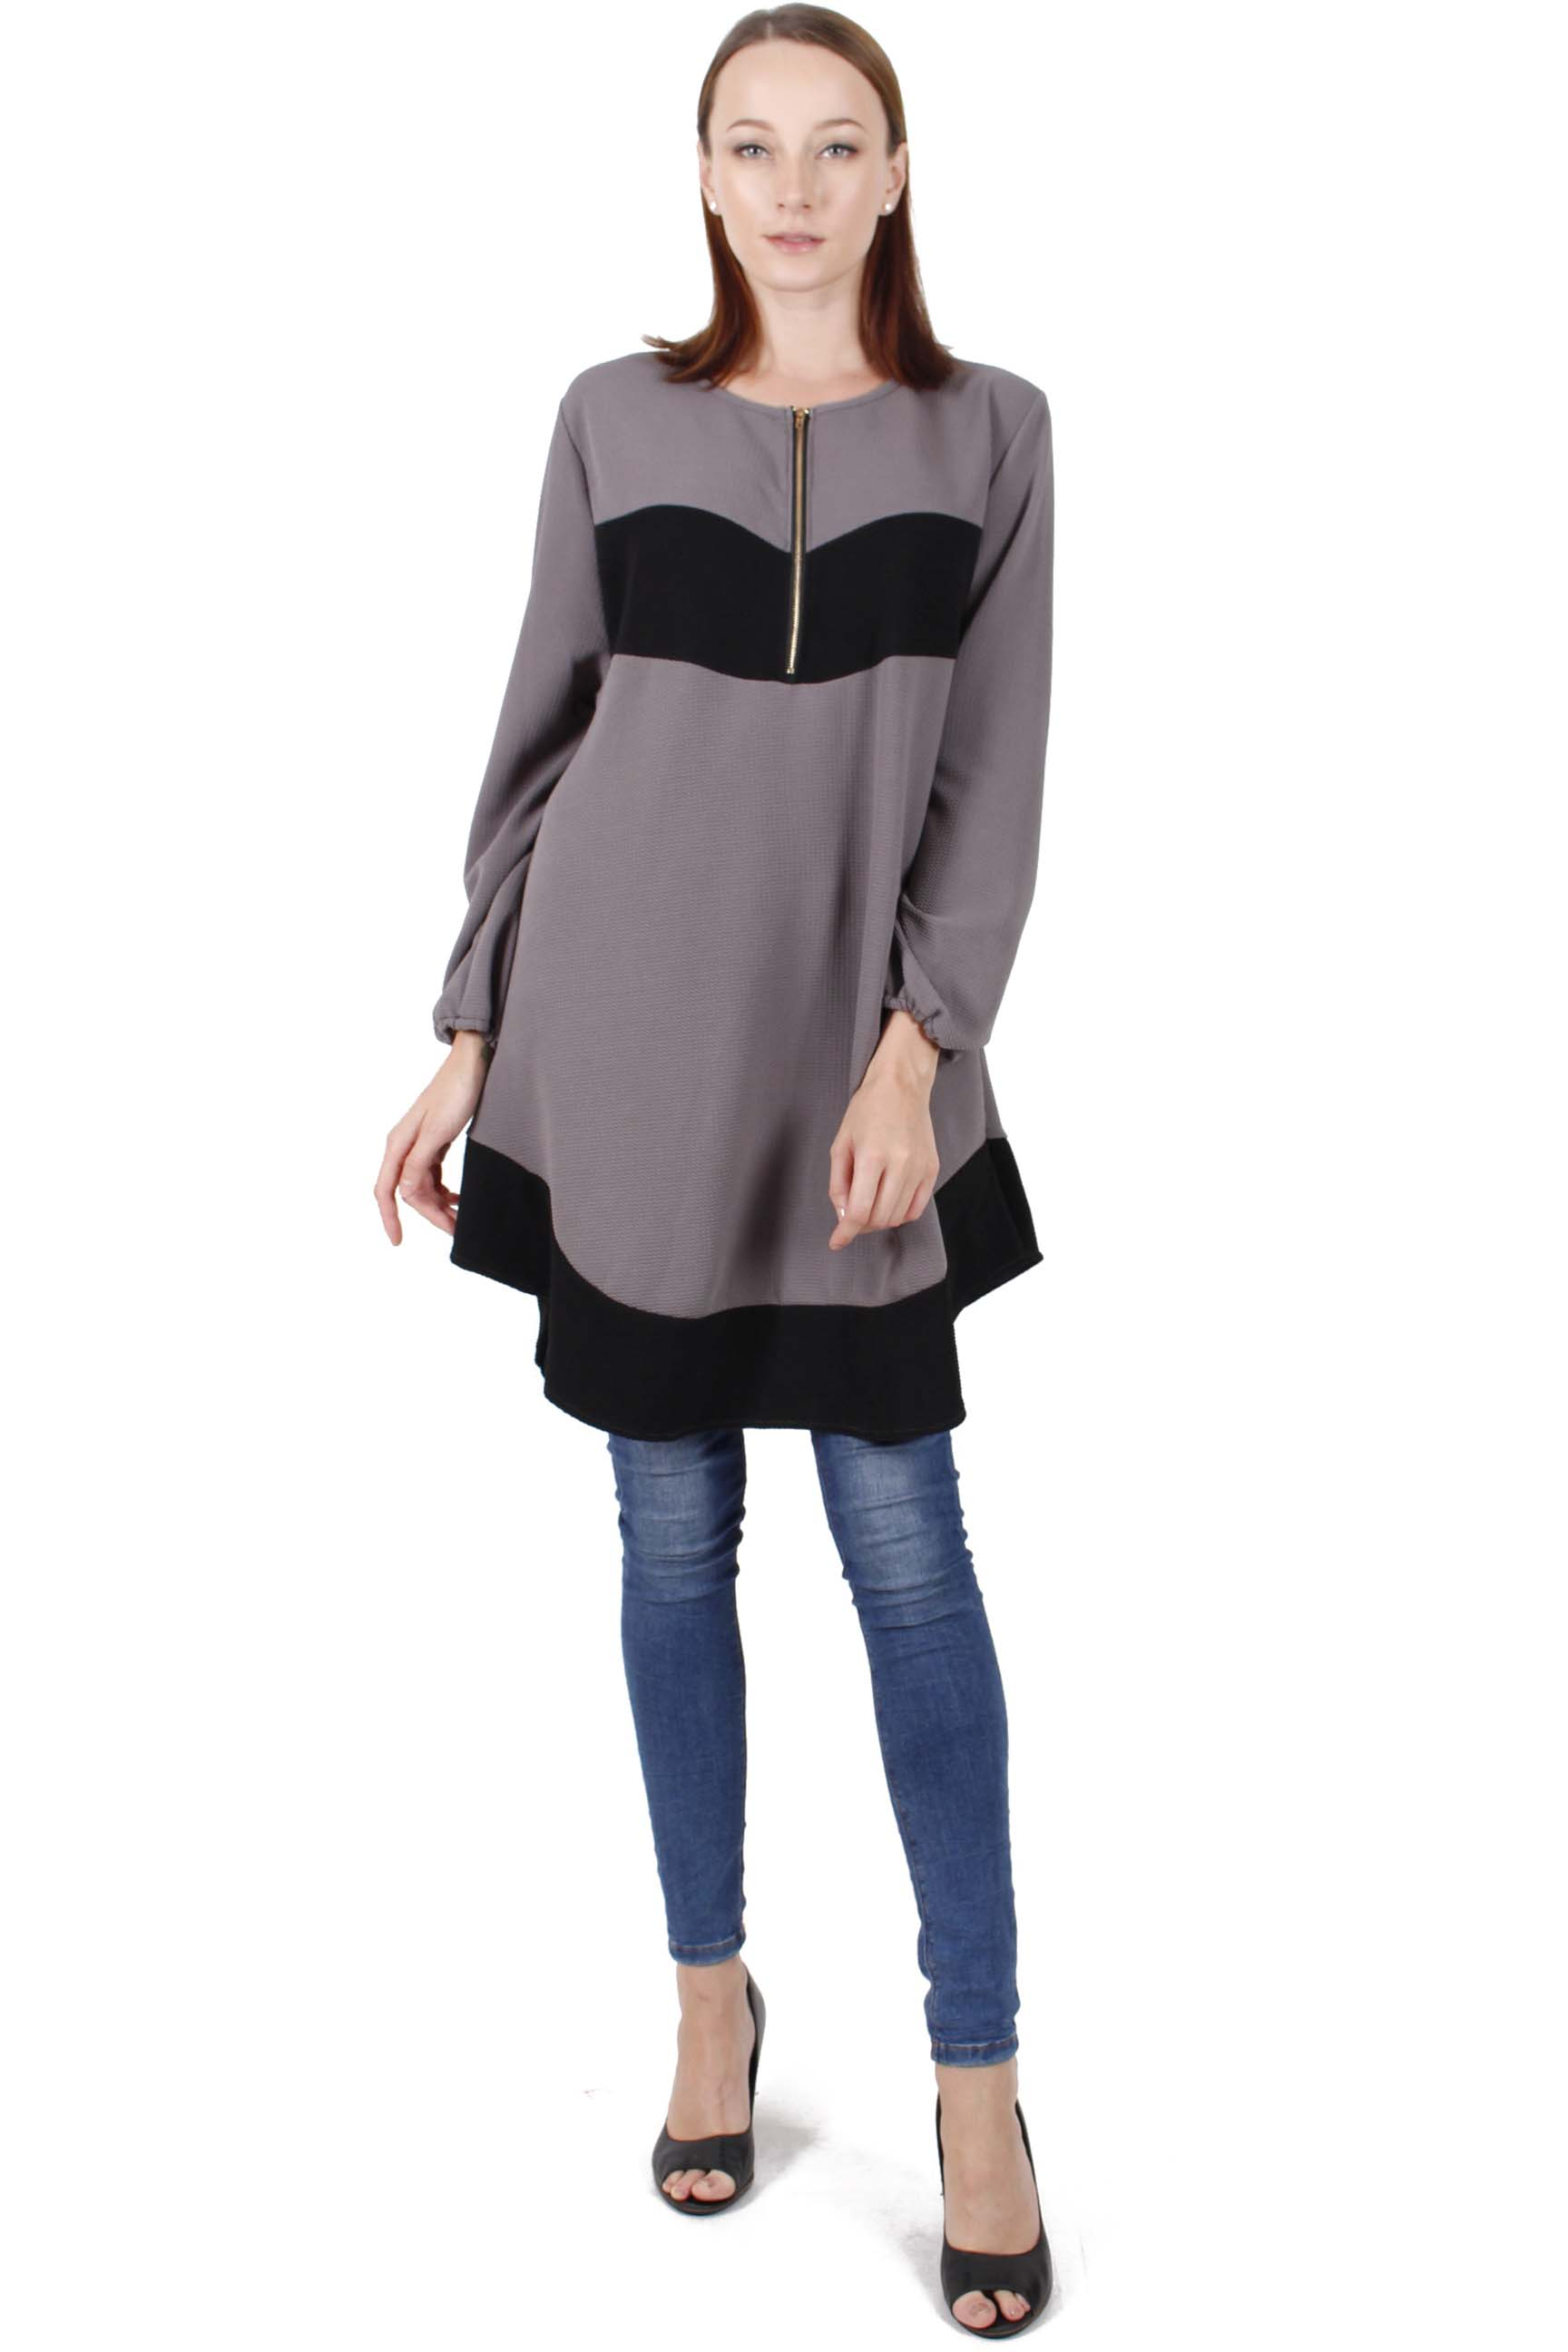 Plus Size Clothing Online Shopping In Malaysia